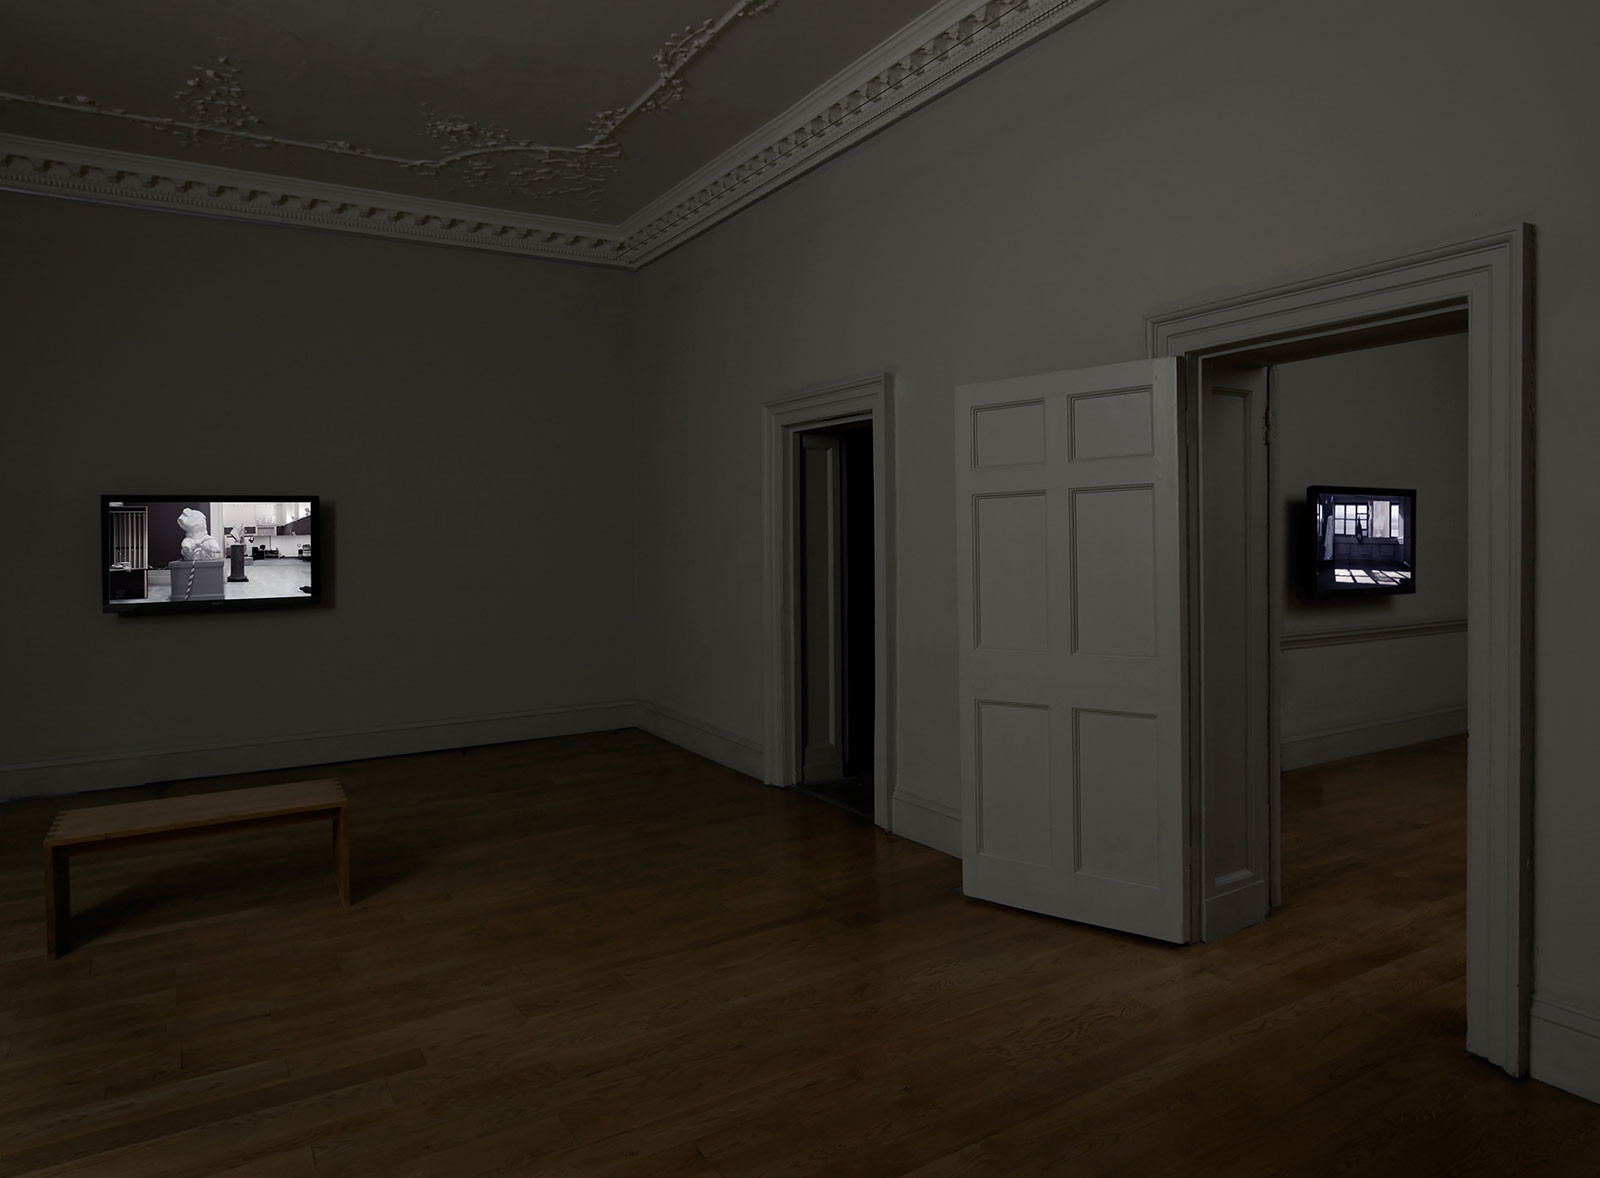 Exhibition view, Domobaal, London, 2011.